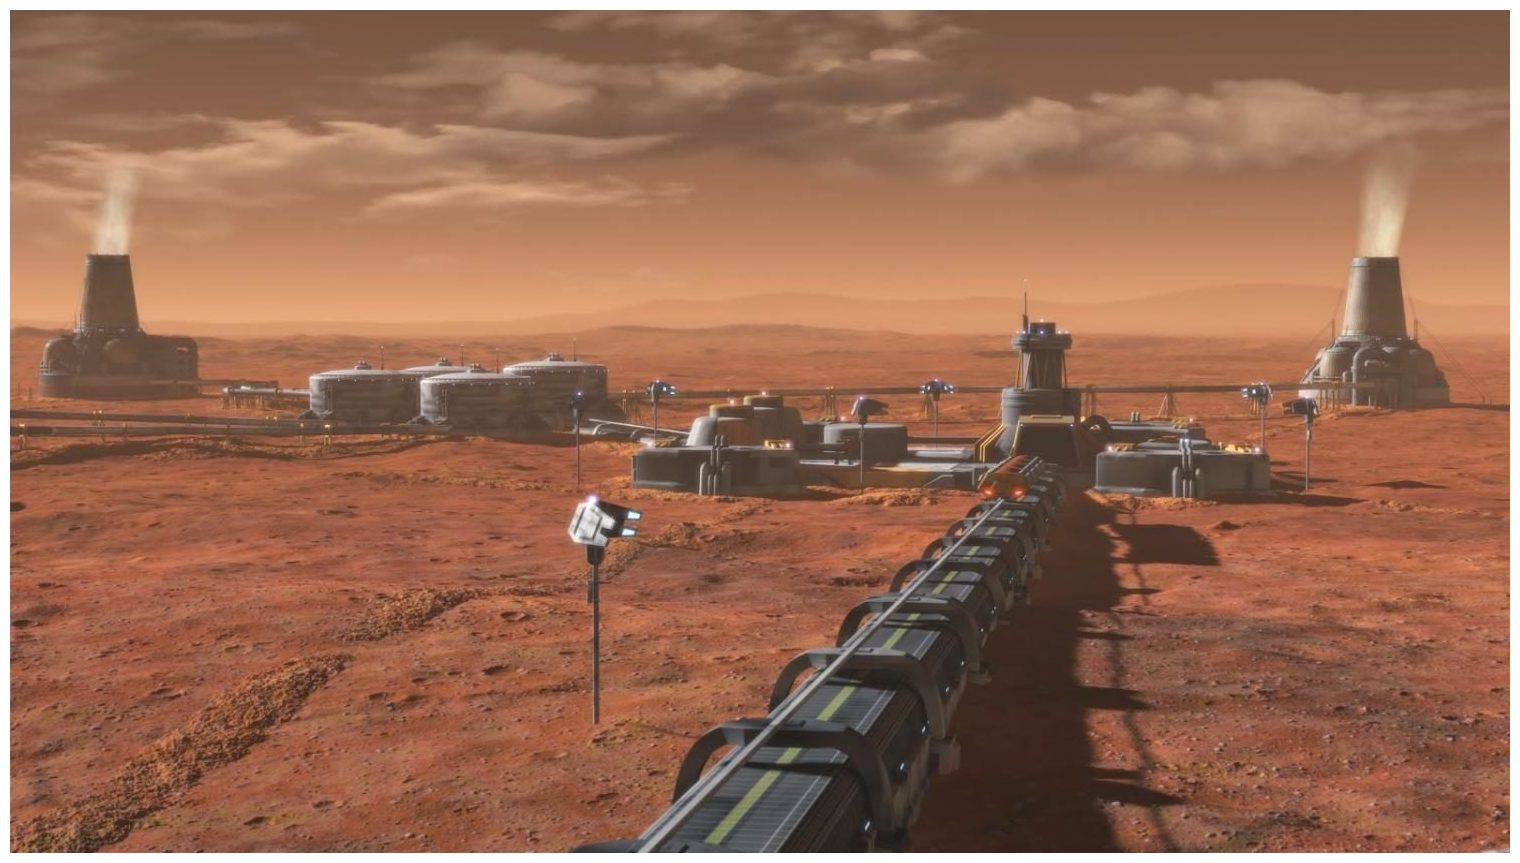 terraforming mars for human habitation essay Human colonization of other planets, even in our solar system, is a long way away terraforming mars: hydrosphere and oxygen atmosphere.